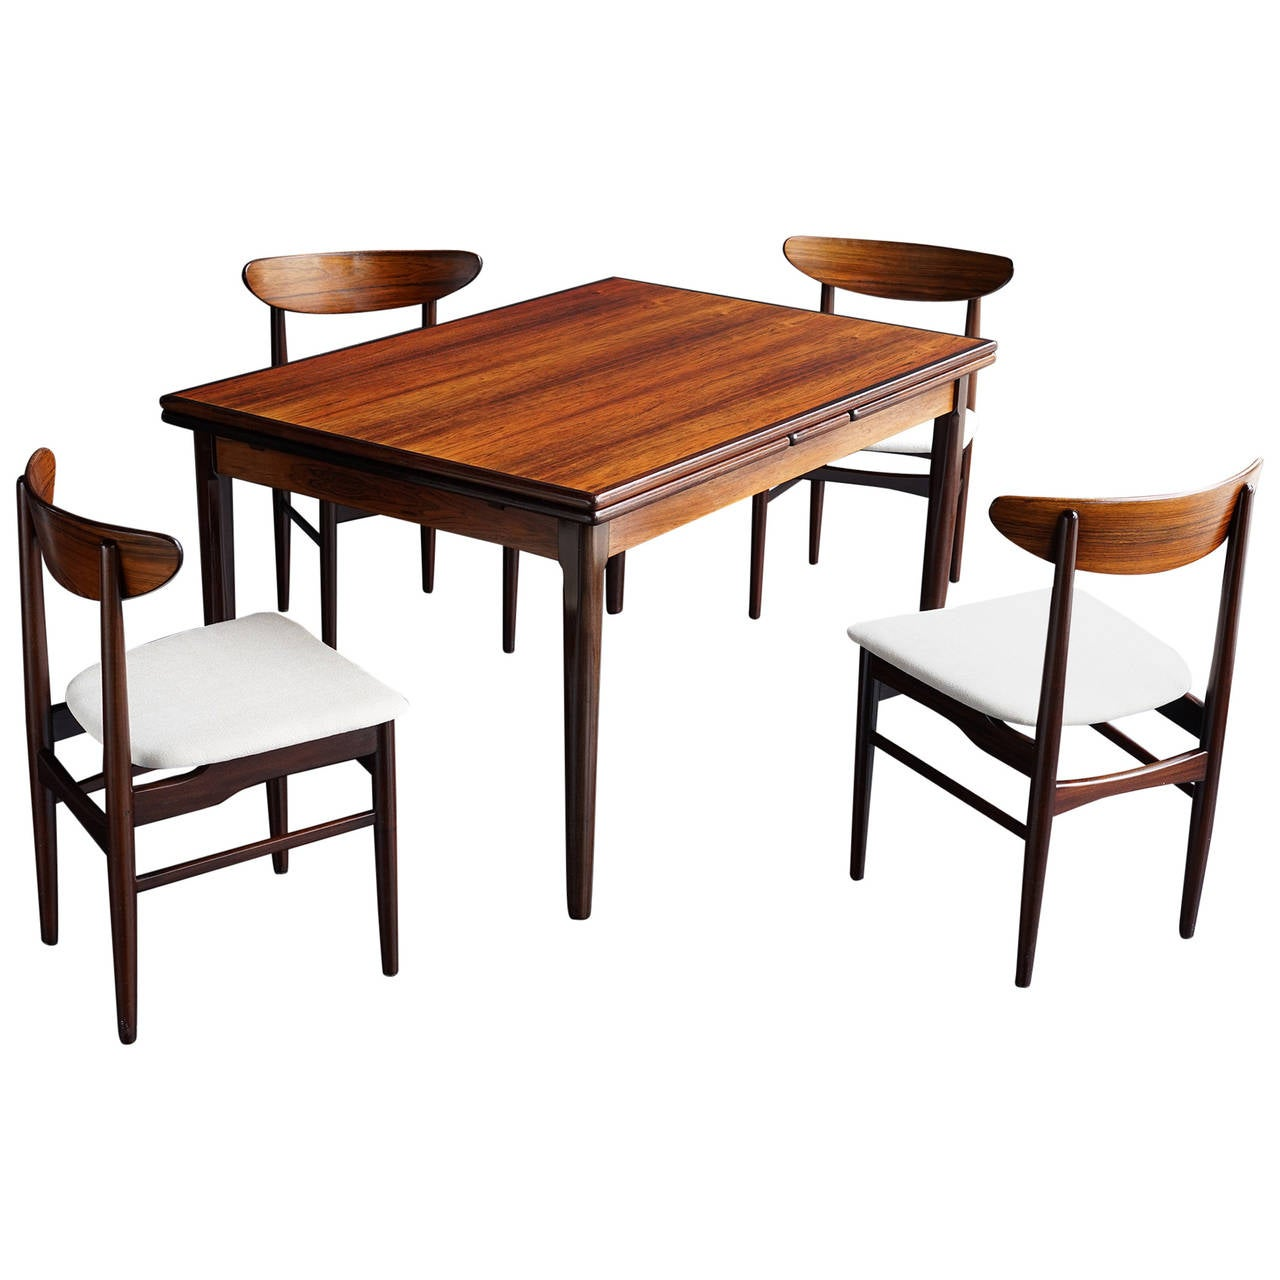 Danish modern rosewood dining set at 1stdibs for Stylish dining table set